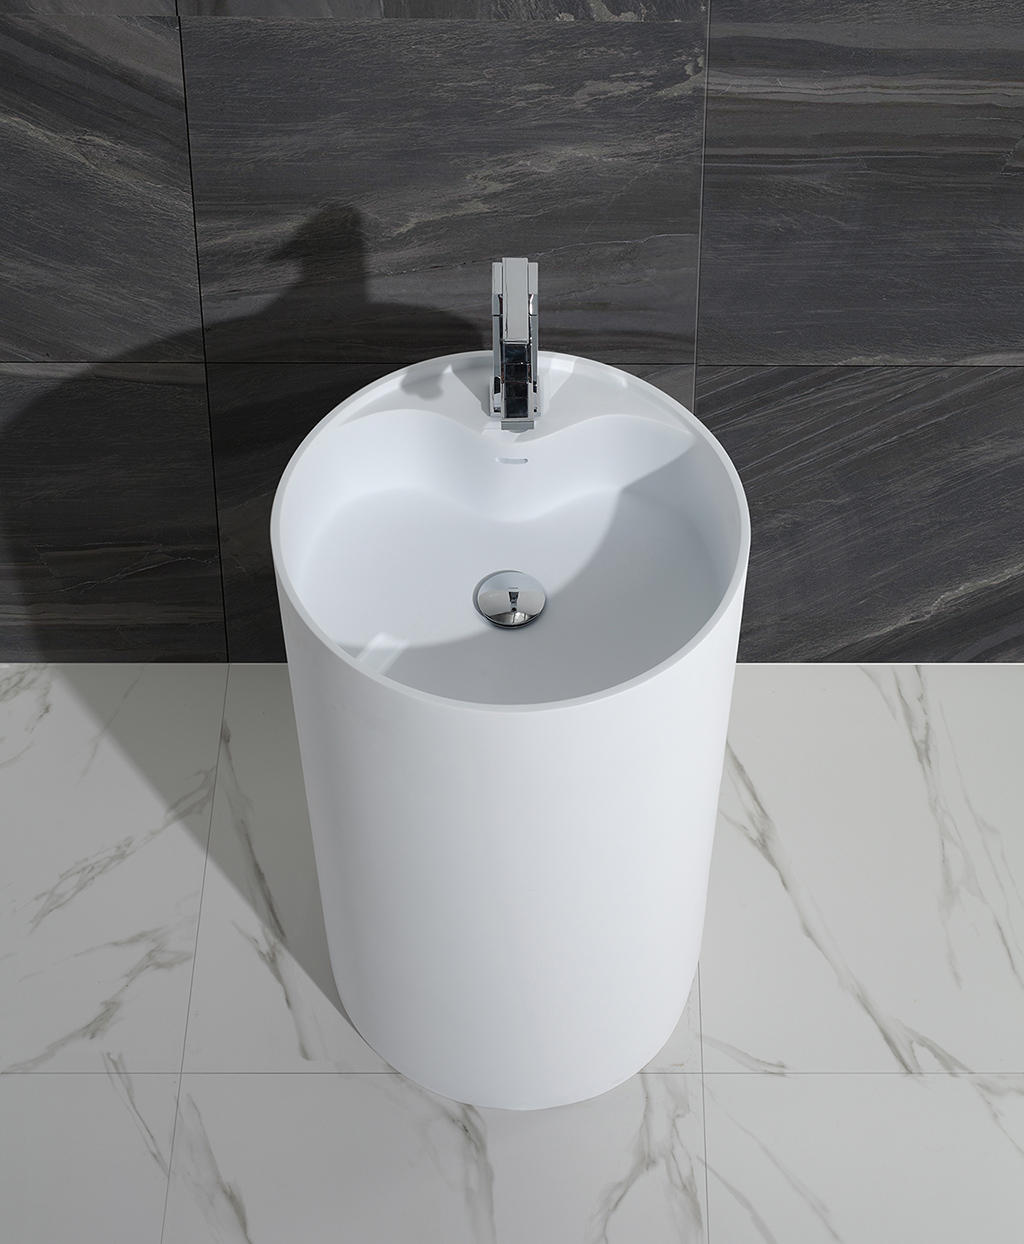 KingKonree standard free standing wash basin supplier for bathroom